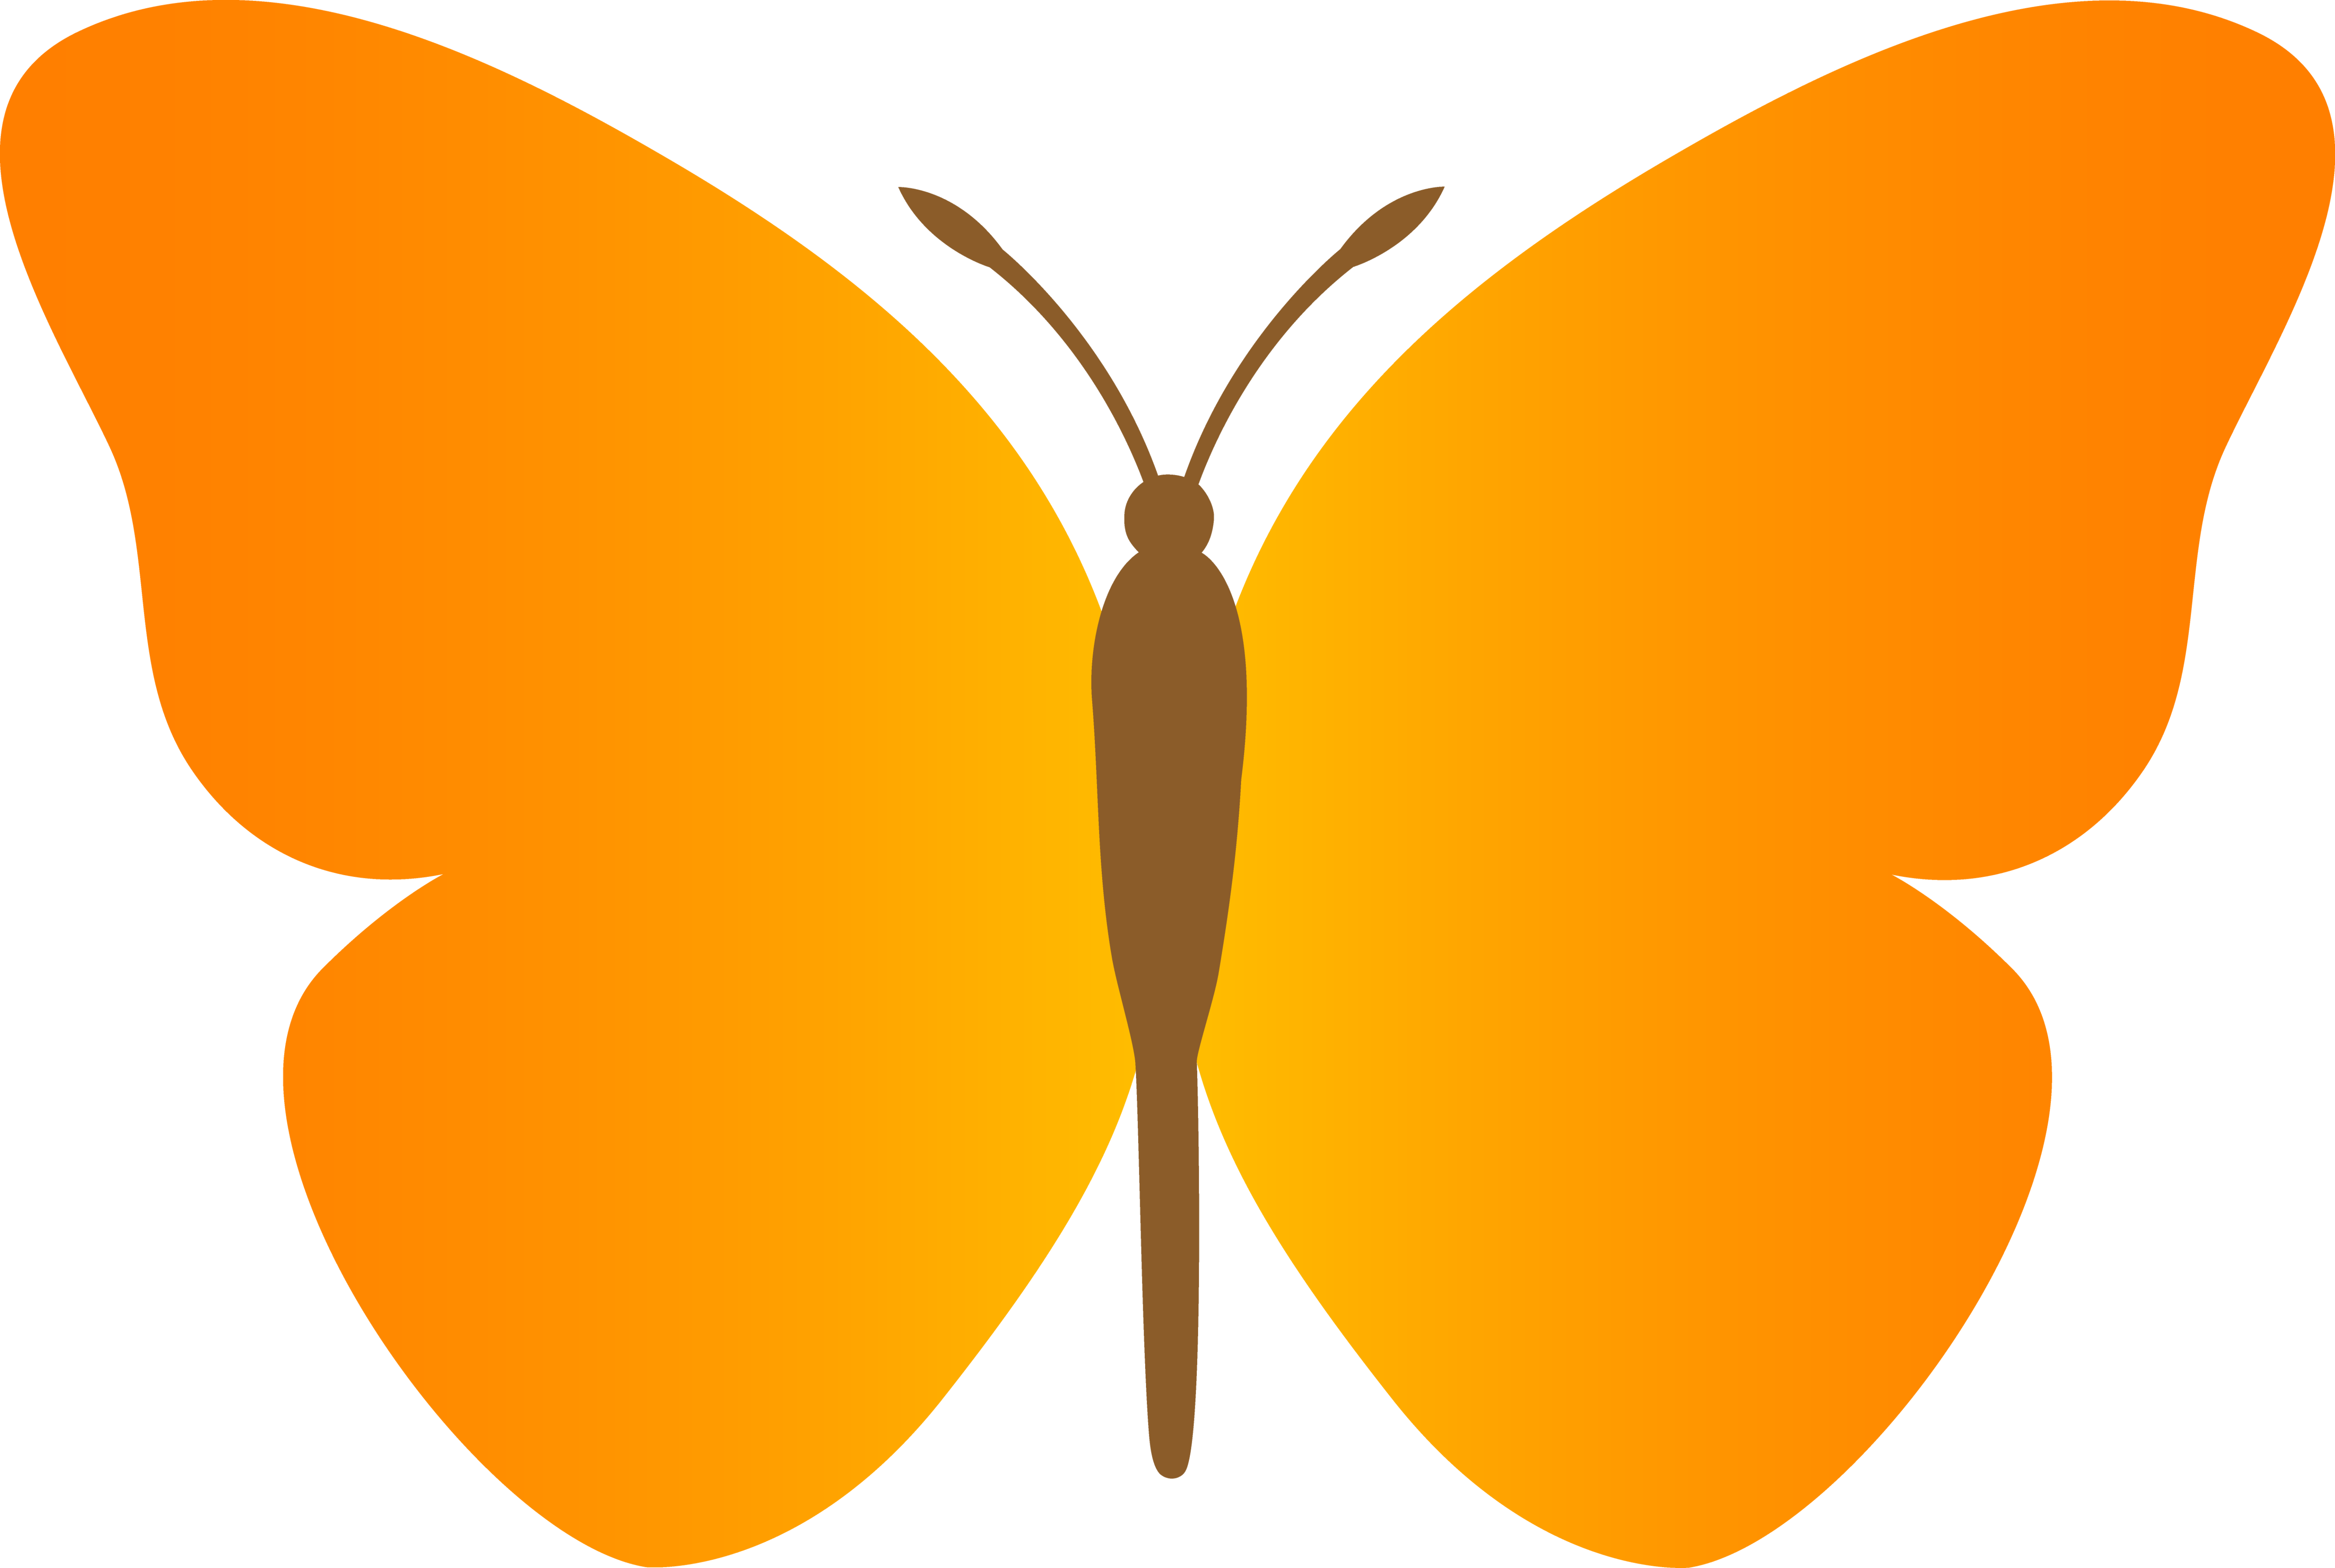 transparent download At getdrawings com free. Moth clipart insect.